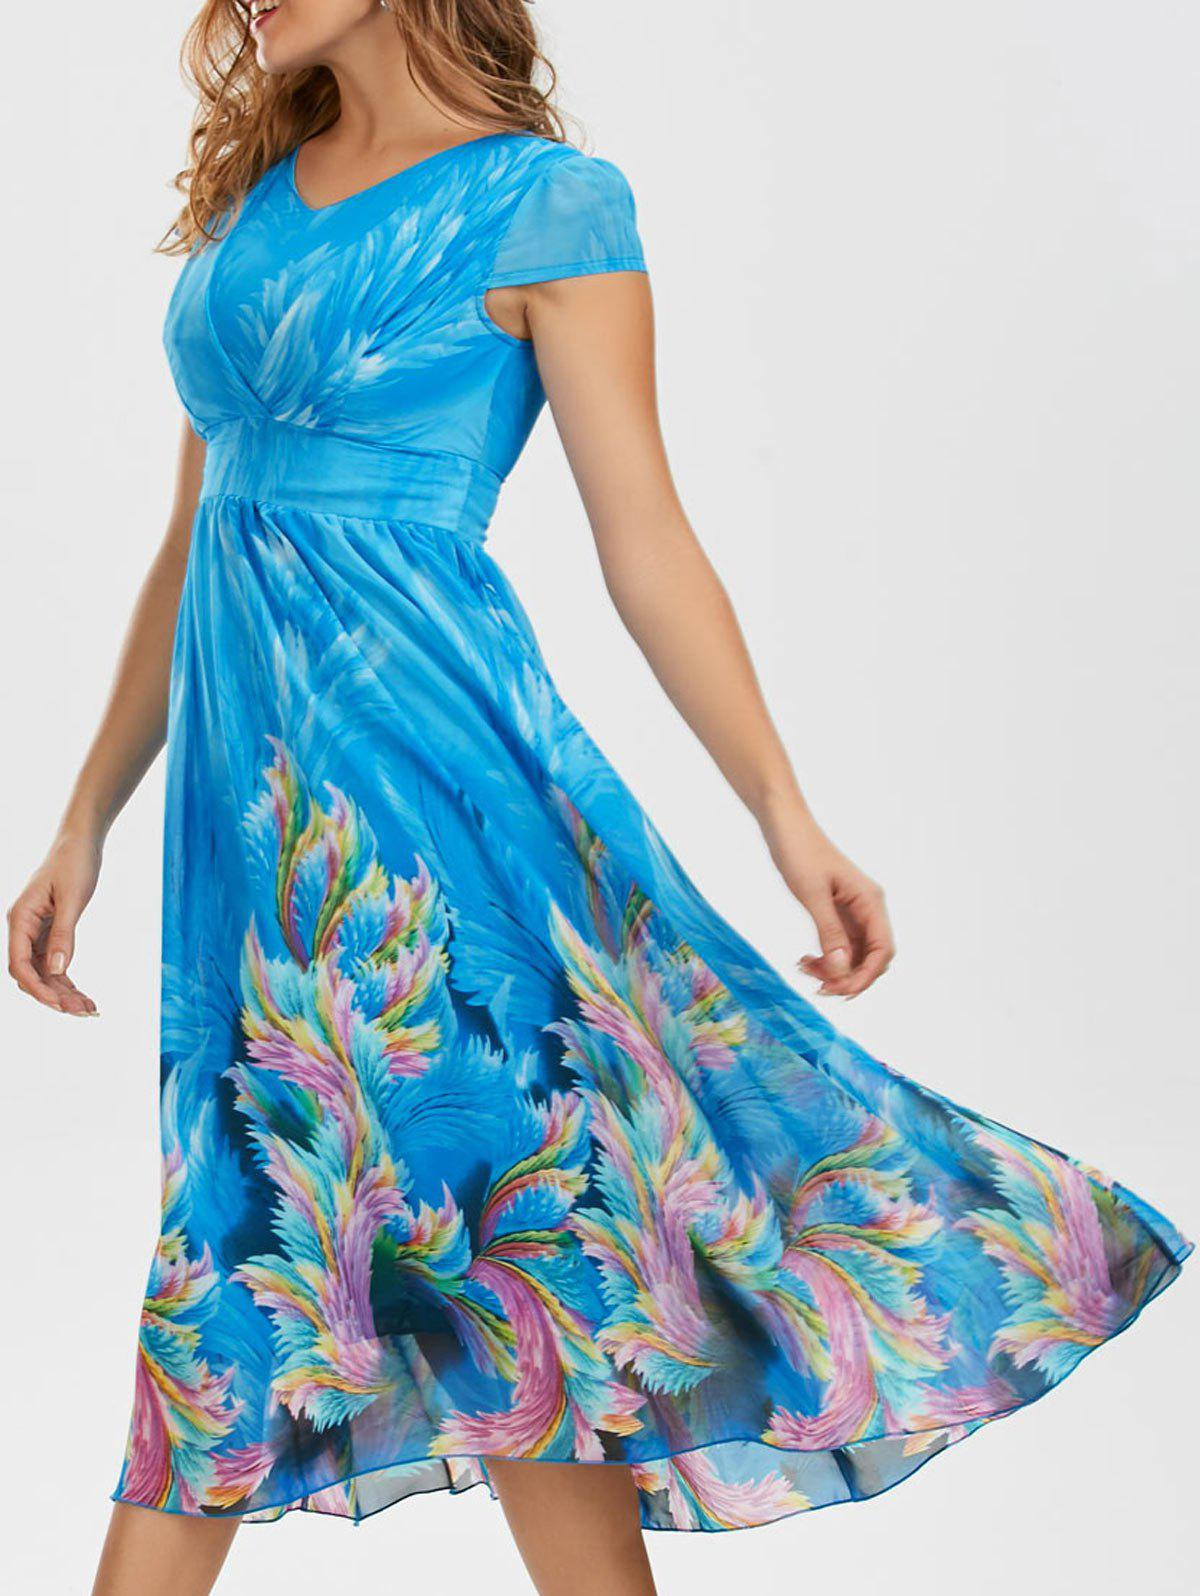 Bohemian Chiffon Midi Floral Dress - BLUE XL